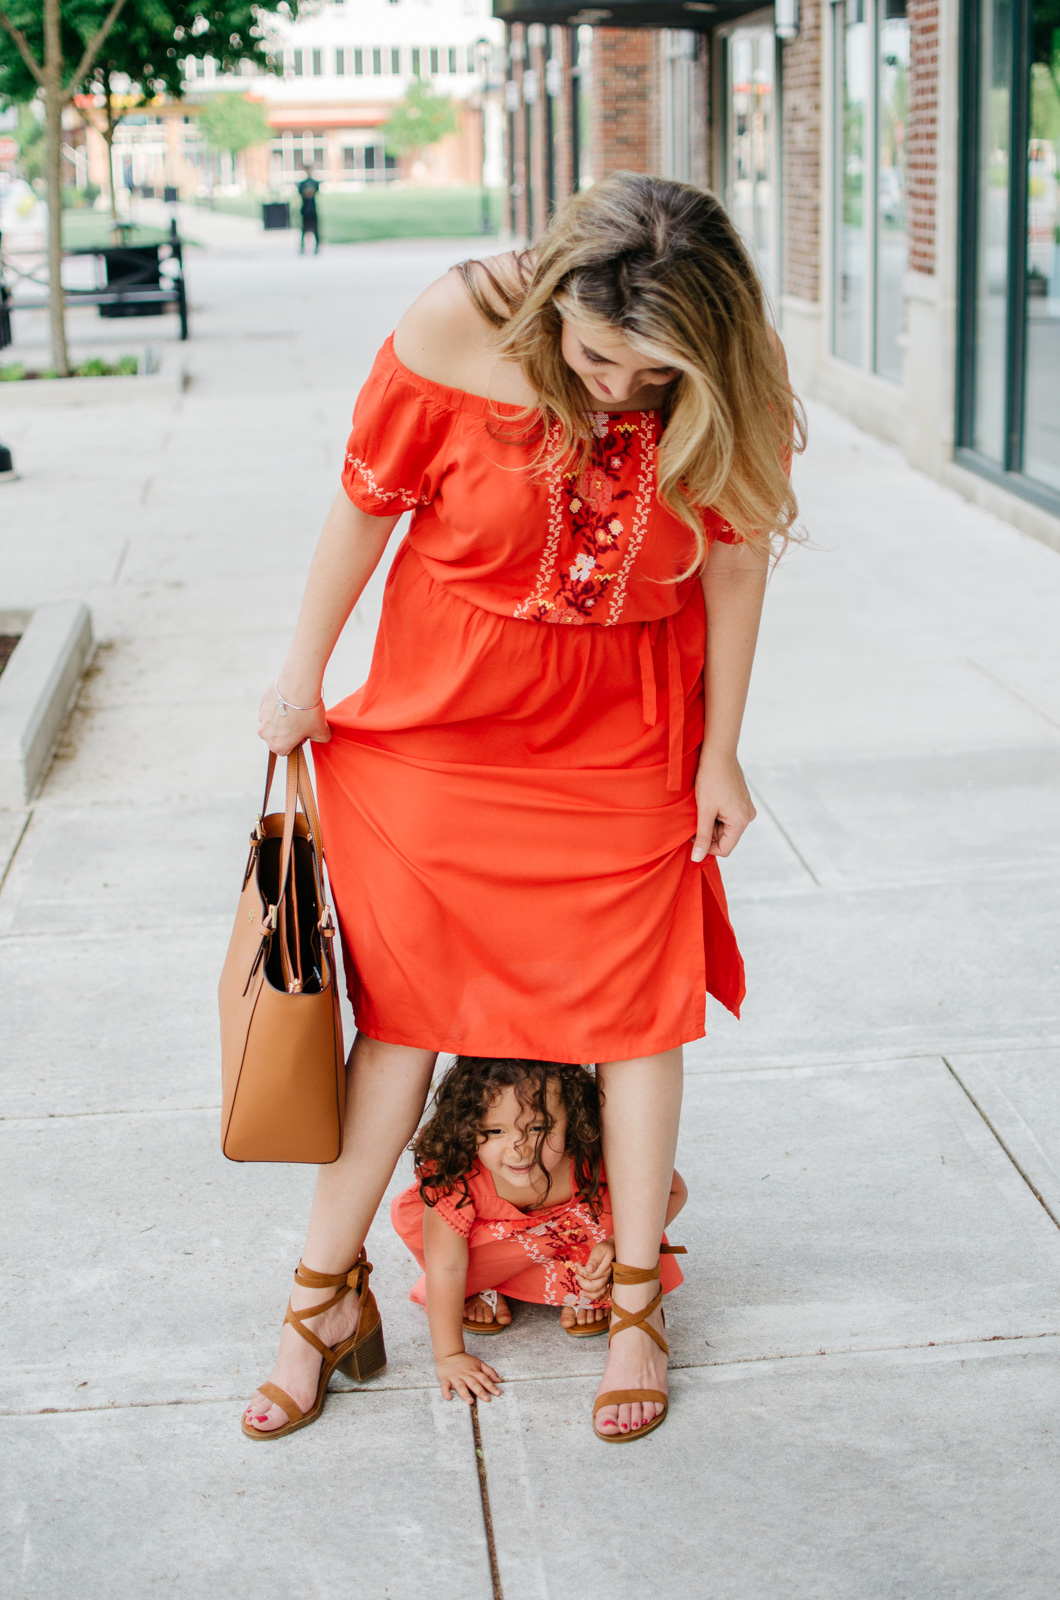 mommy daughter matching outfits - mother daughter dresses | bylaurenm.com